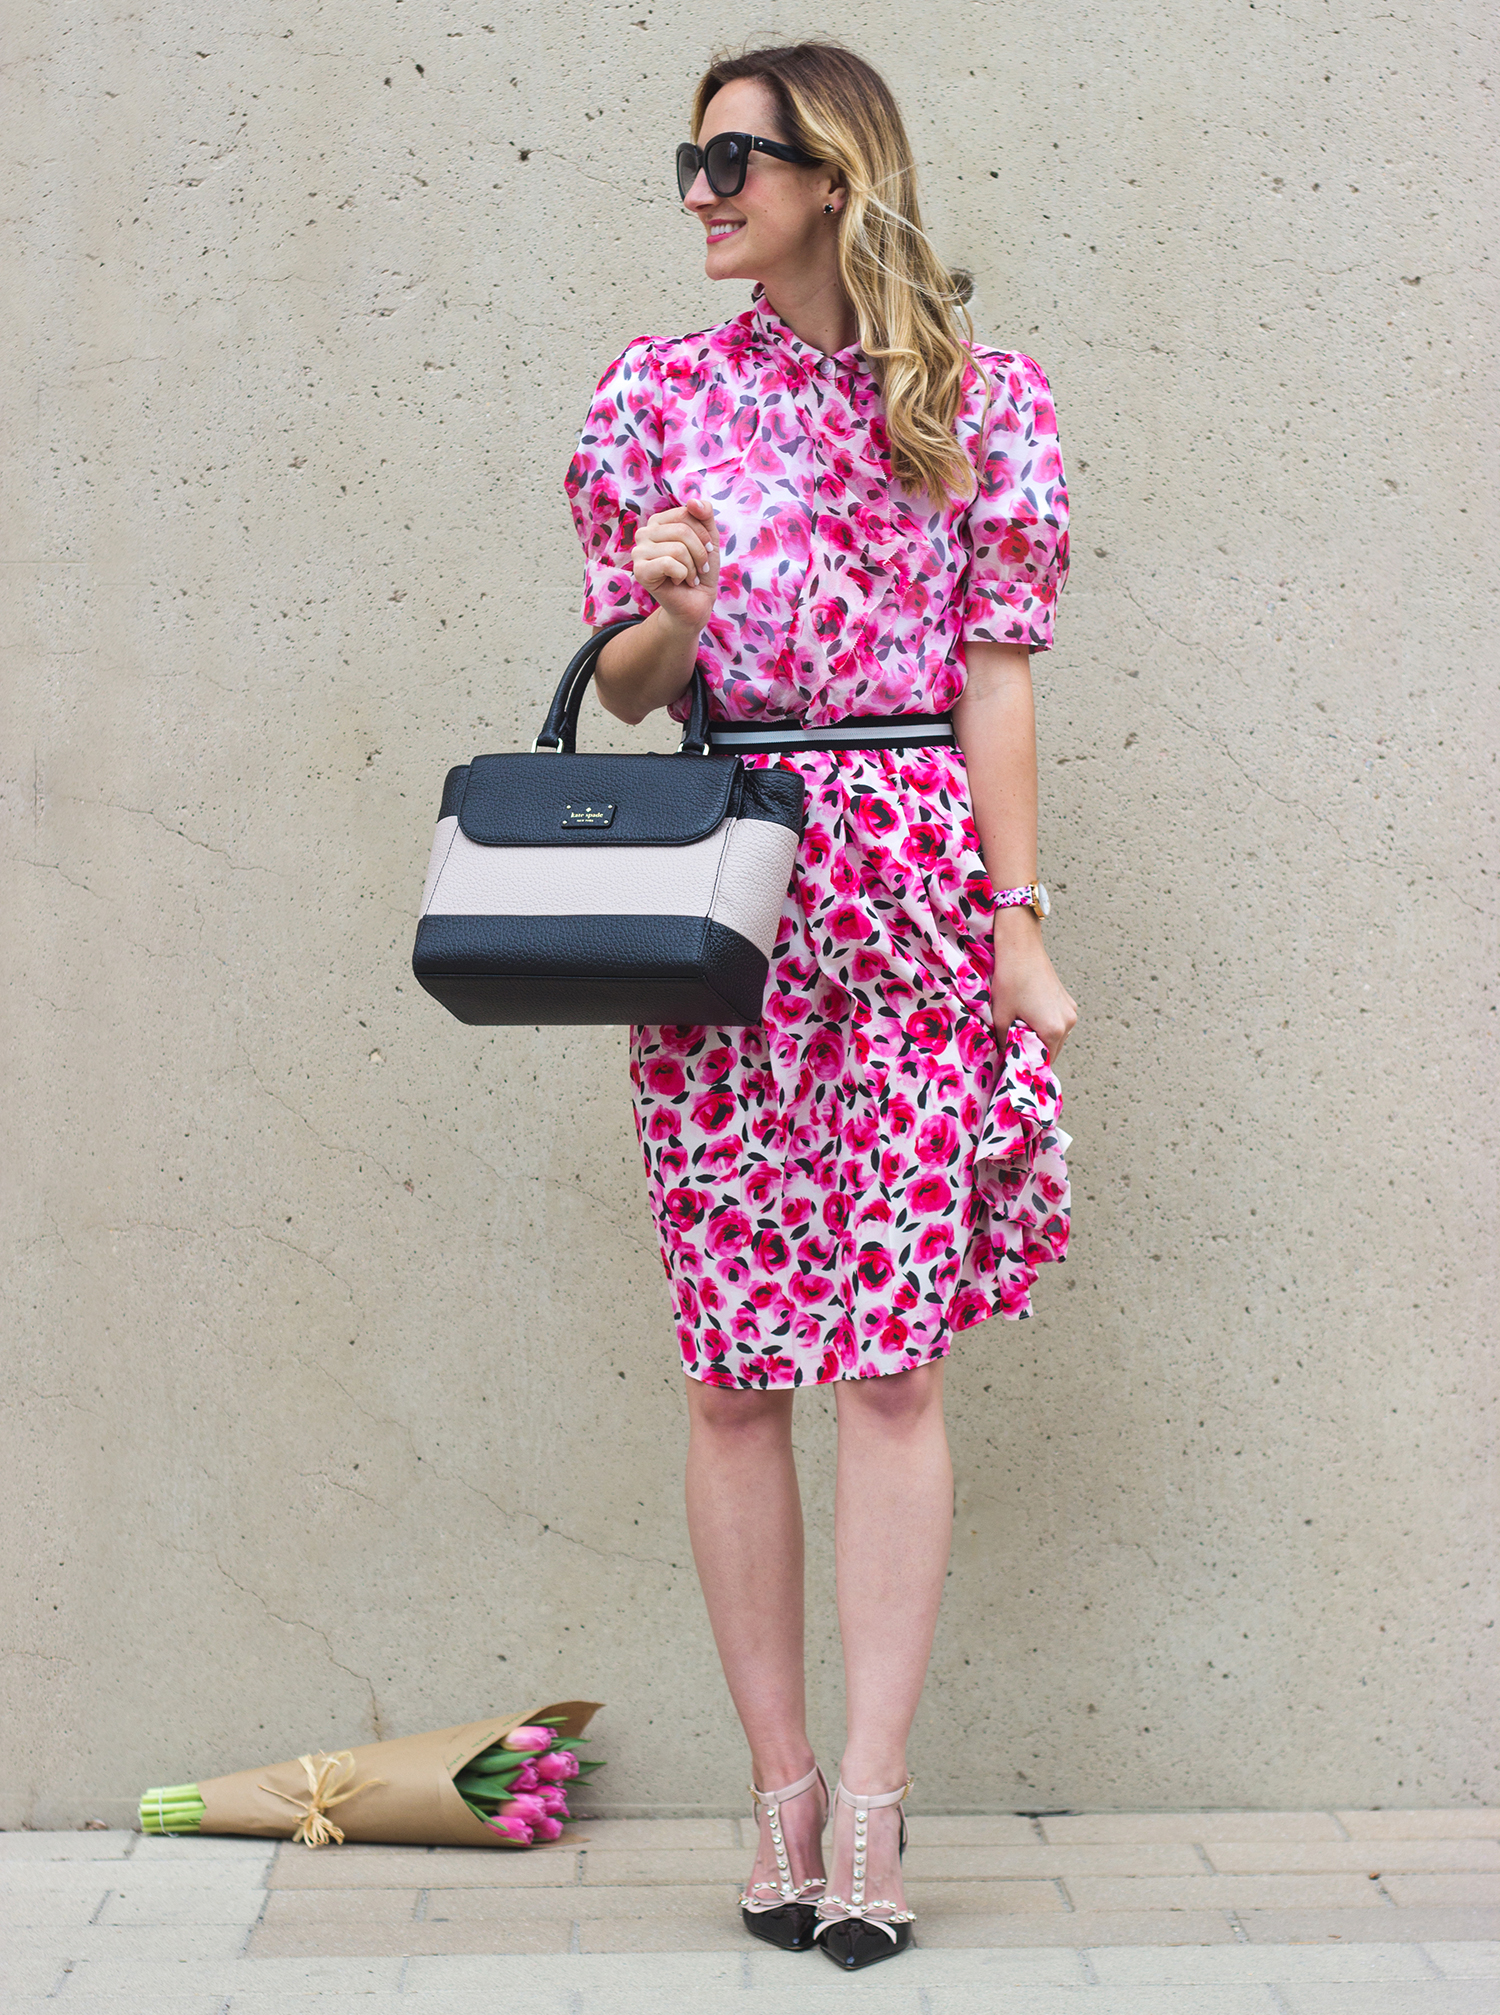 livvyland-blog-olivia-watson-austin-texas-fashion-blogger-kate-spade-broome-street-everyday-tee-white-rose-pleated-skirt-pink-black-spring-outfit-9